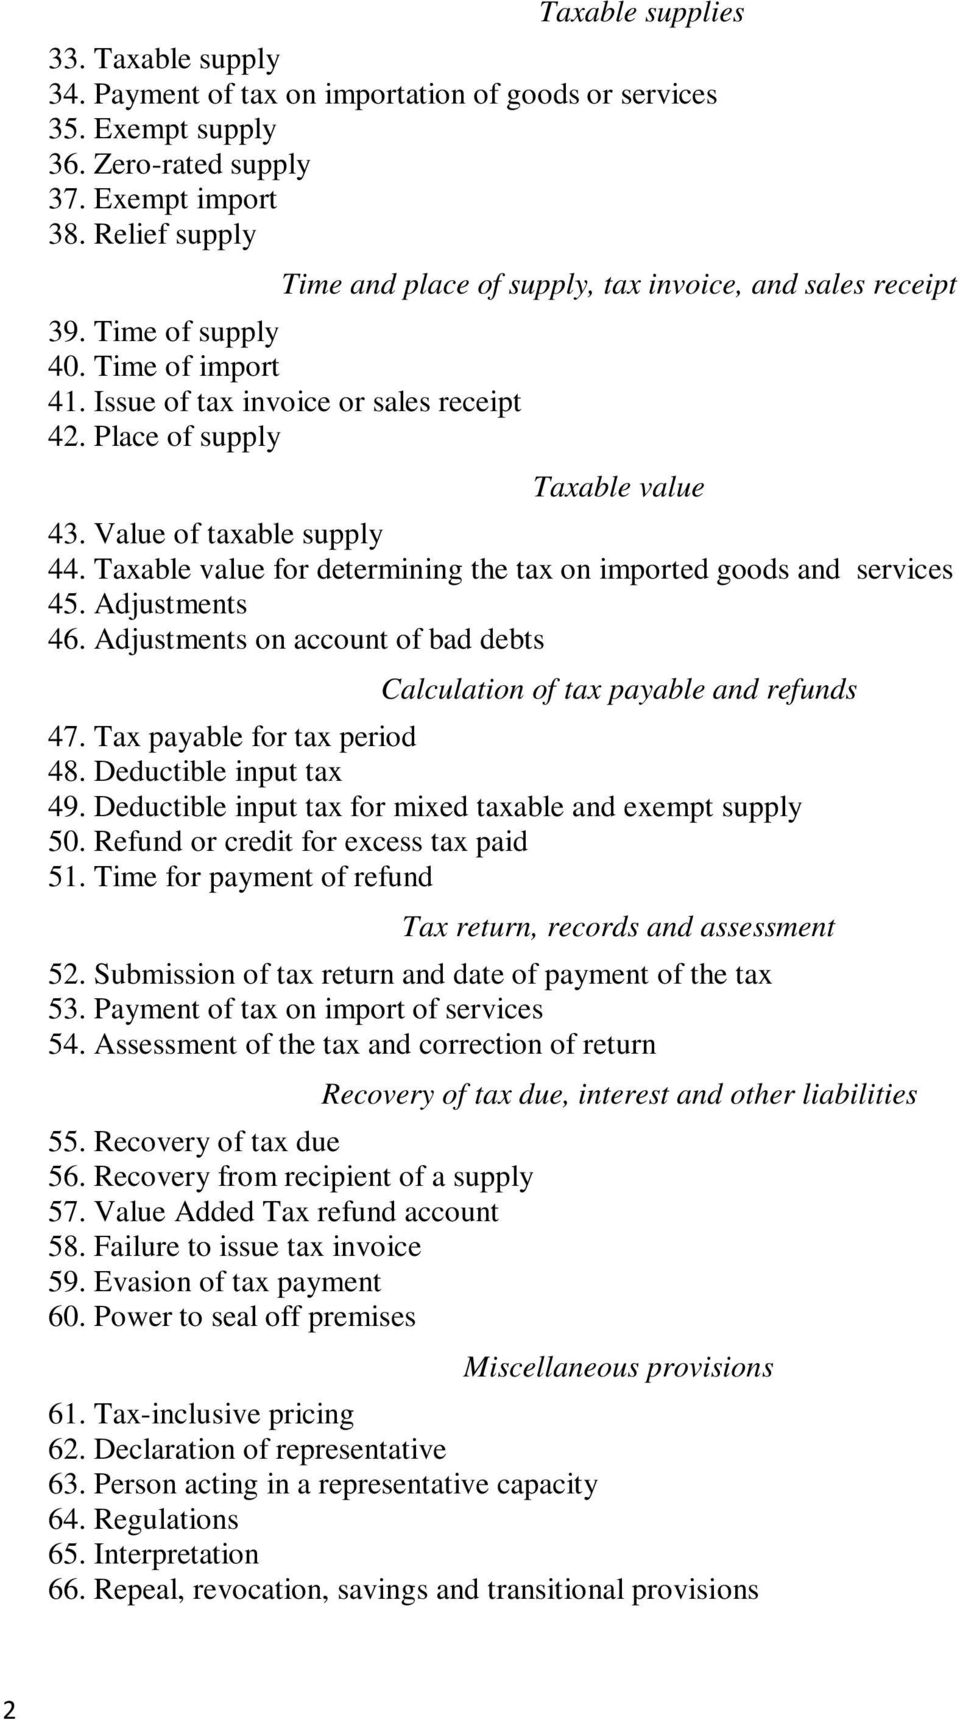 Value of taxable supply 44. Taxable value for determining the tax on imported goods and services 45. Adjustments 46. Adjustments on account of bad debts Calculation of tax payable and refunds 47.